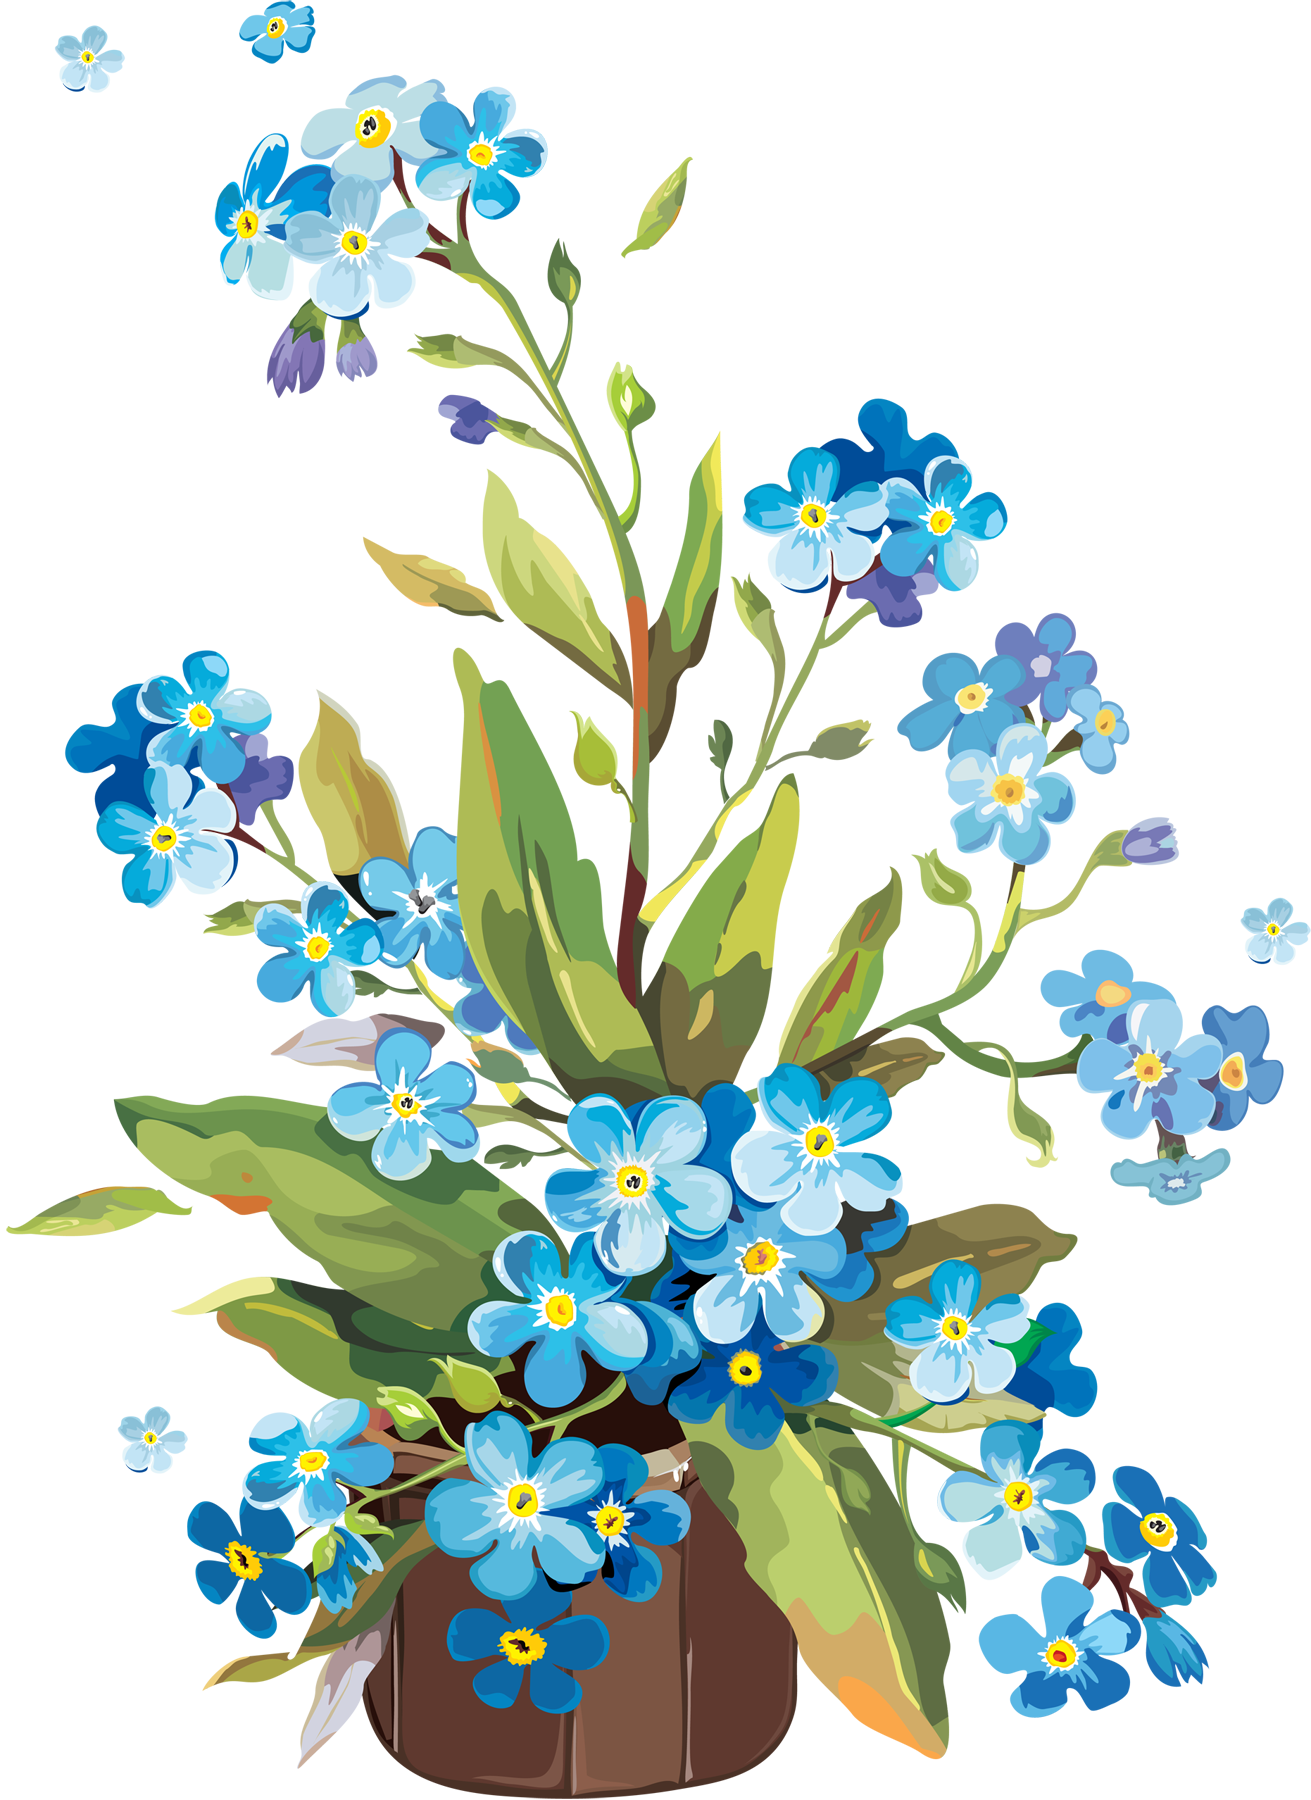 Flower power clipart png free Pin by Malle Lehtmets on värviraamat | Pinterest | Forget, Flowers ... png free